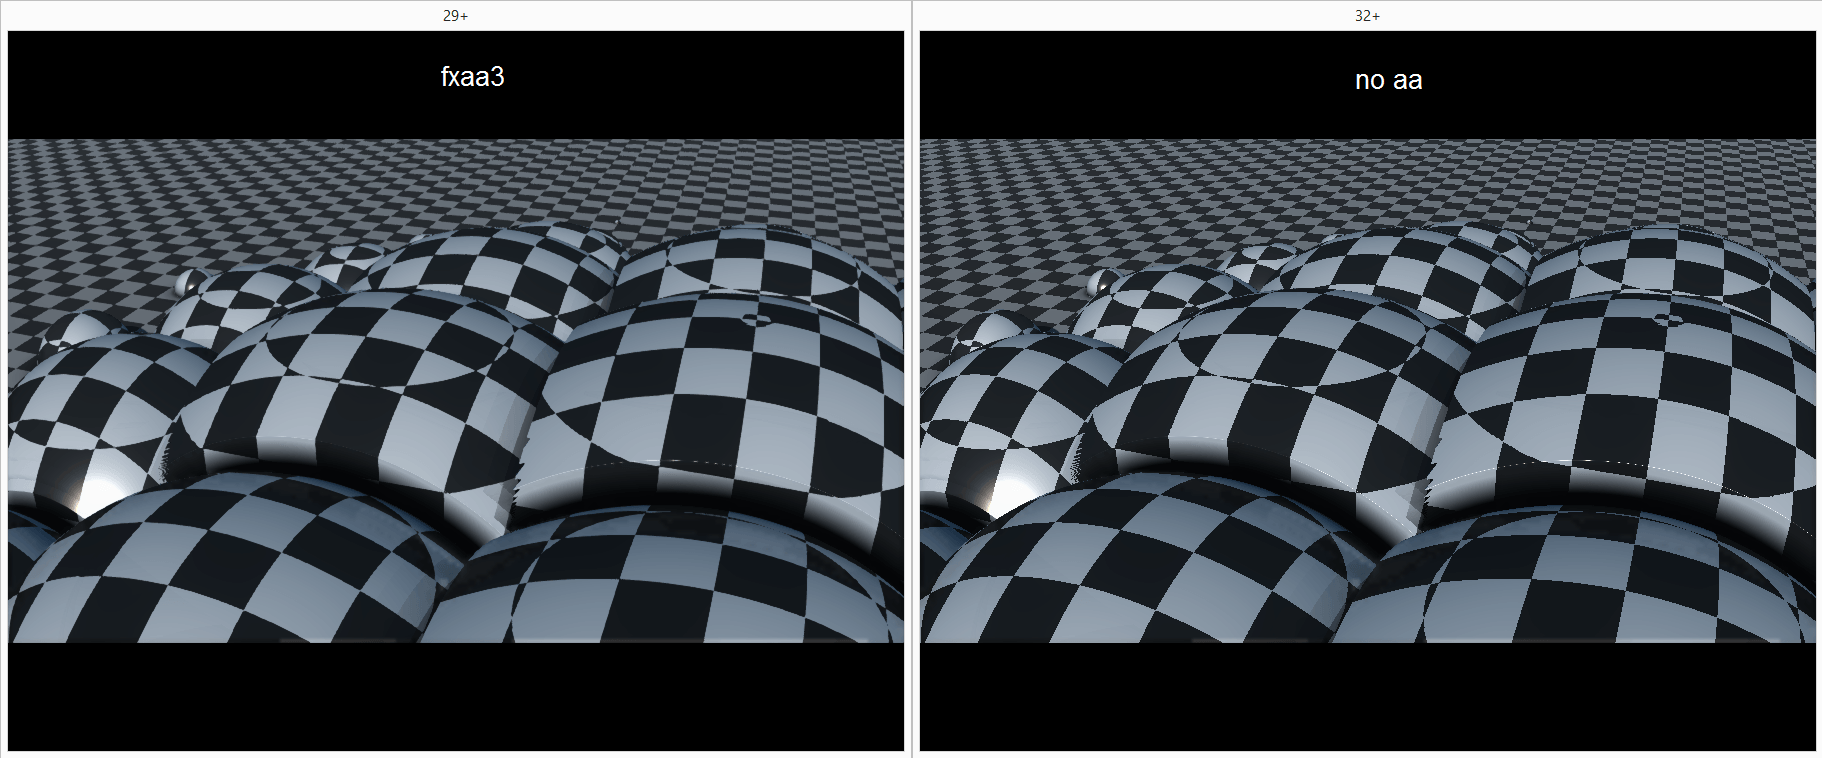 Image showing off fxaa3 (left) and no aa (right)